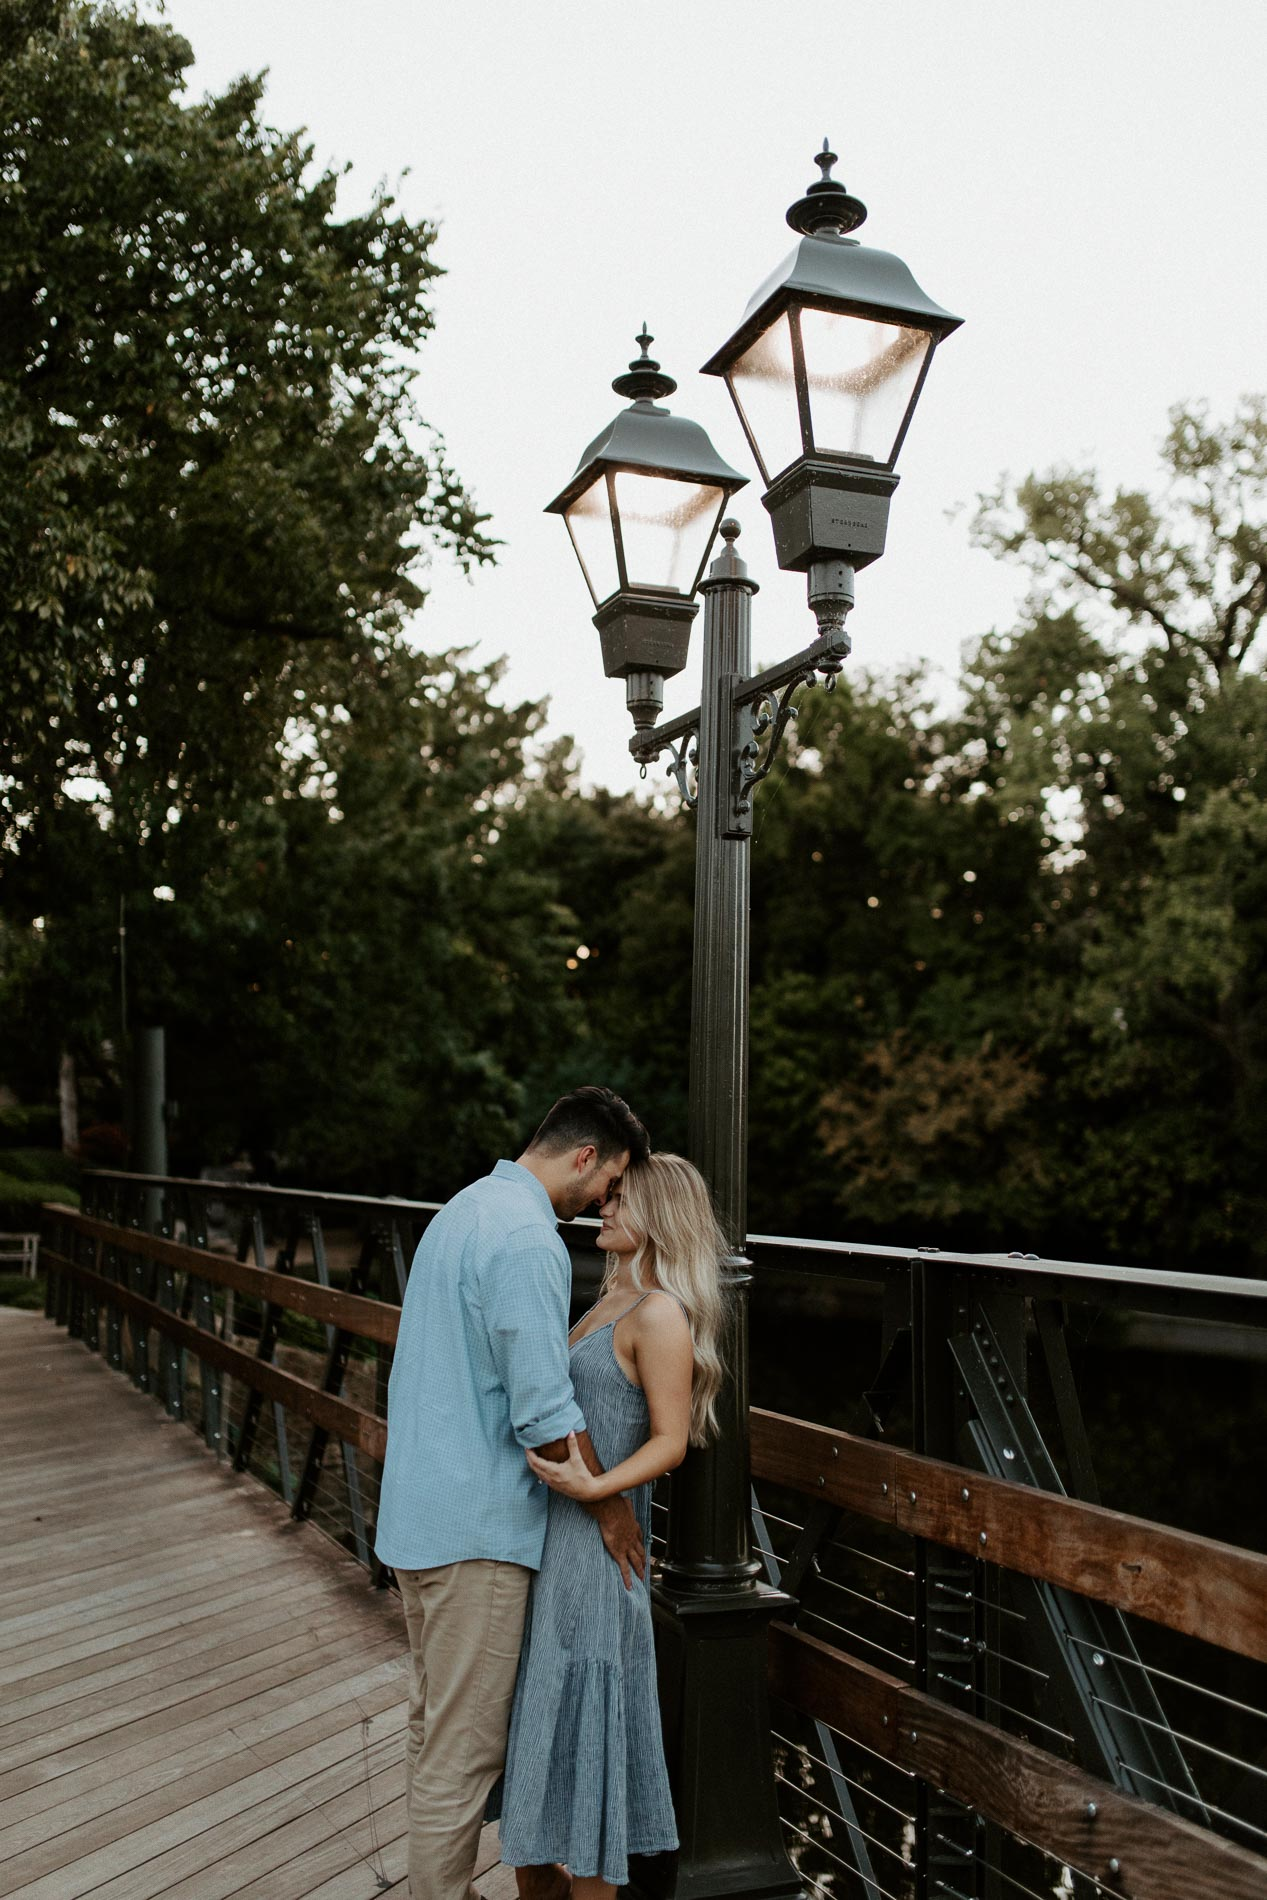 Couple leaning against light pole making out and being romantic for engagement photos